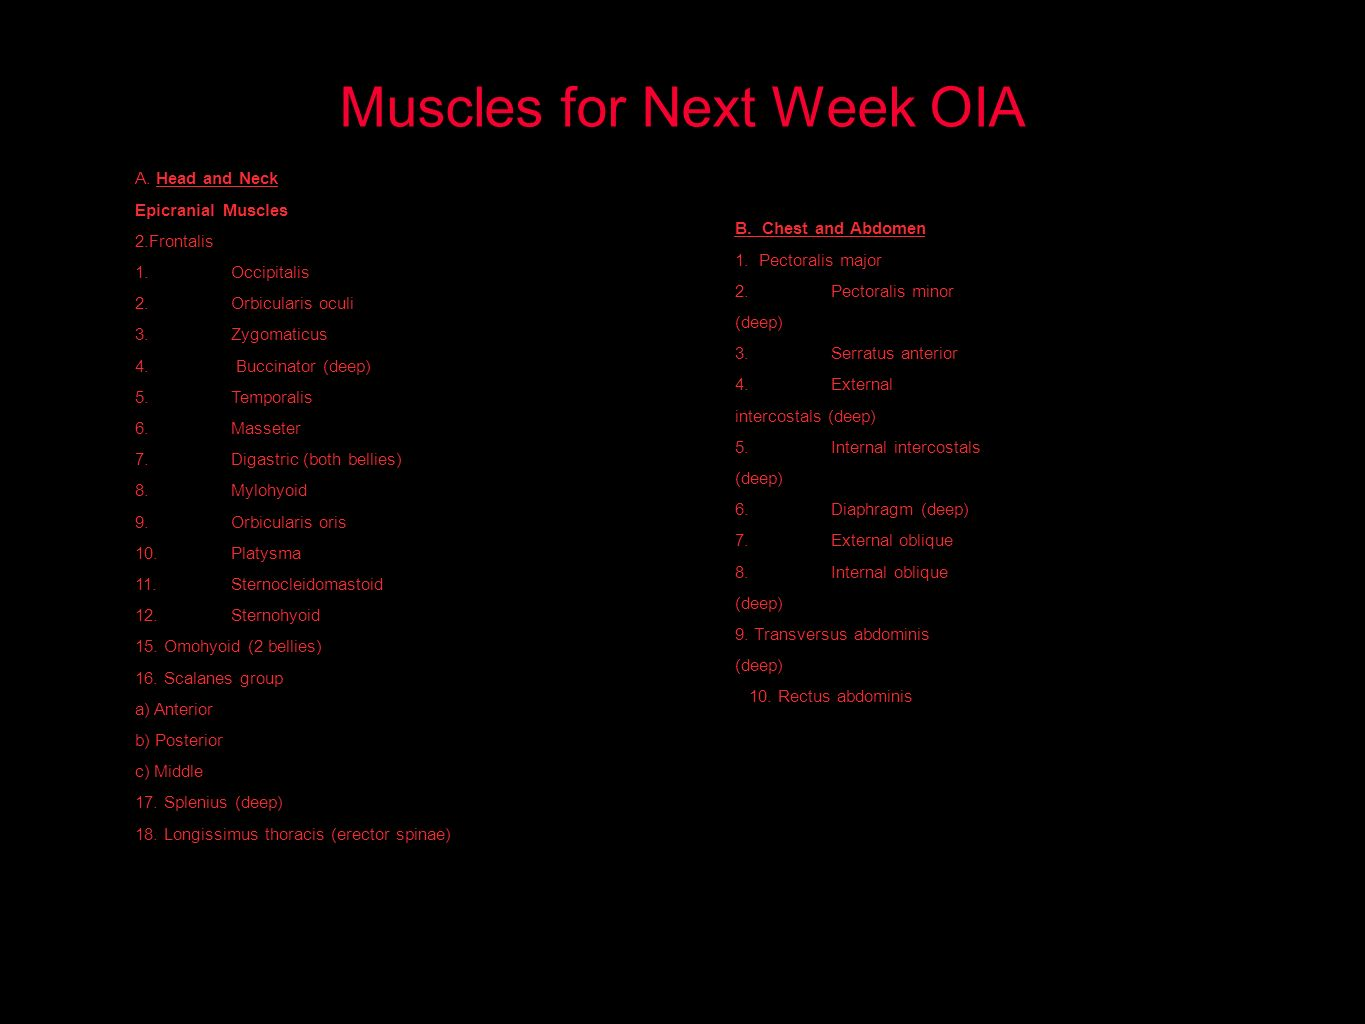 Muscles for Next Week OIA